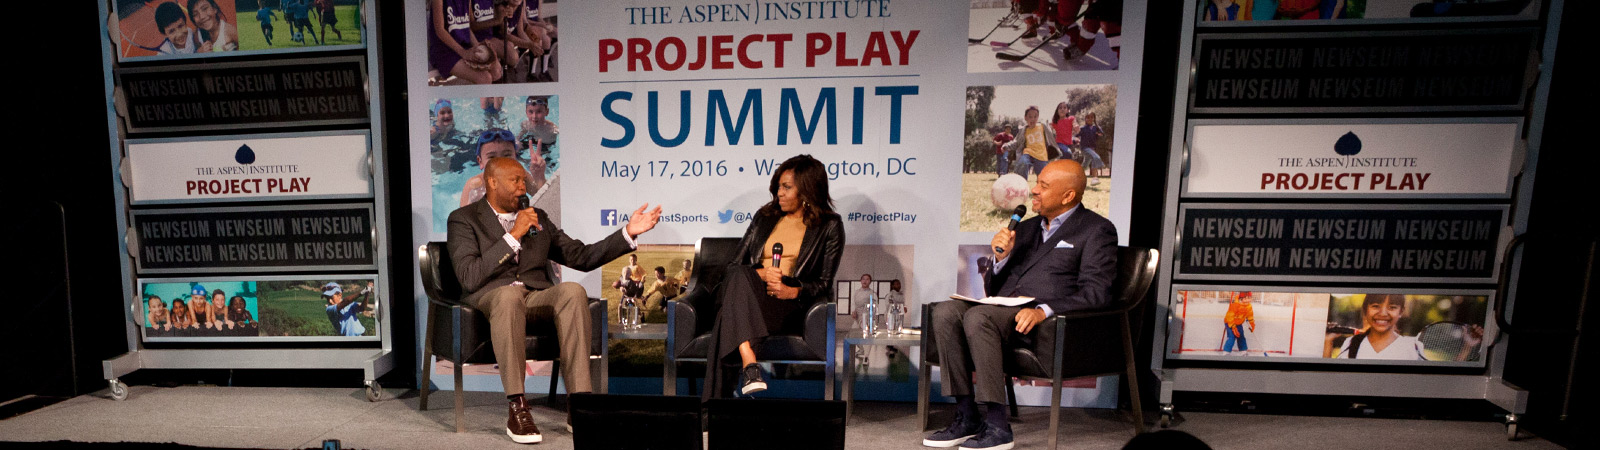 2016 Project Play Summit